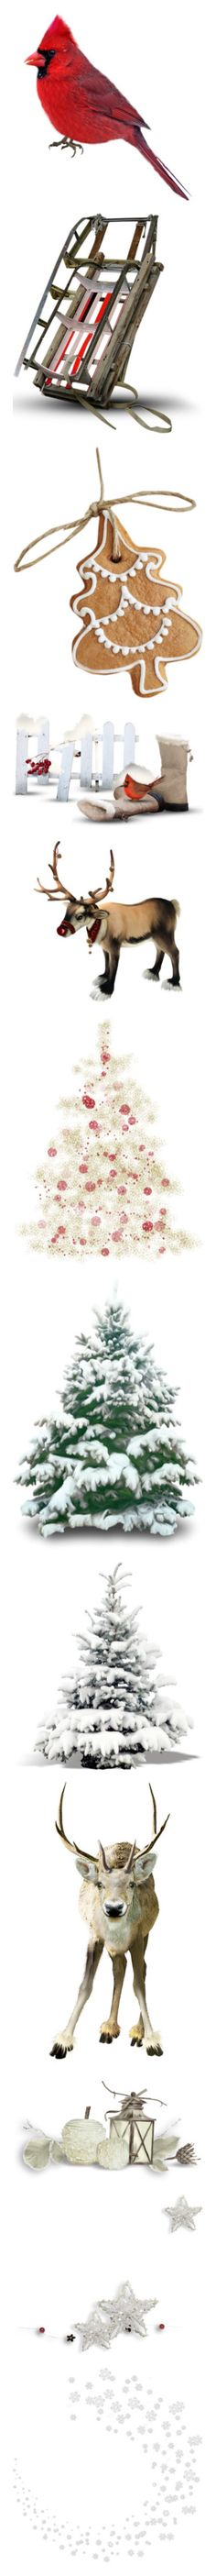 """Christmas Items #3"" by moomoofan1972 ❤ liked on Polyvore featuring birds, animals, red, christmas, winter, xmas, snow, fillers, food and ornaments"